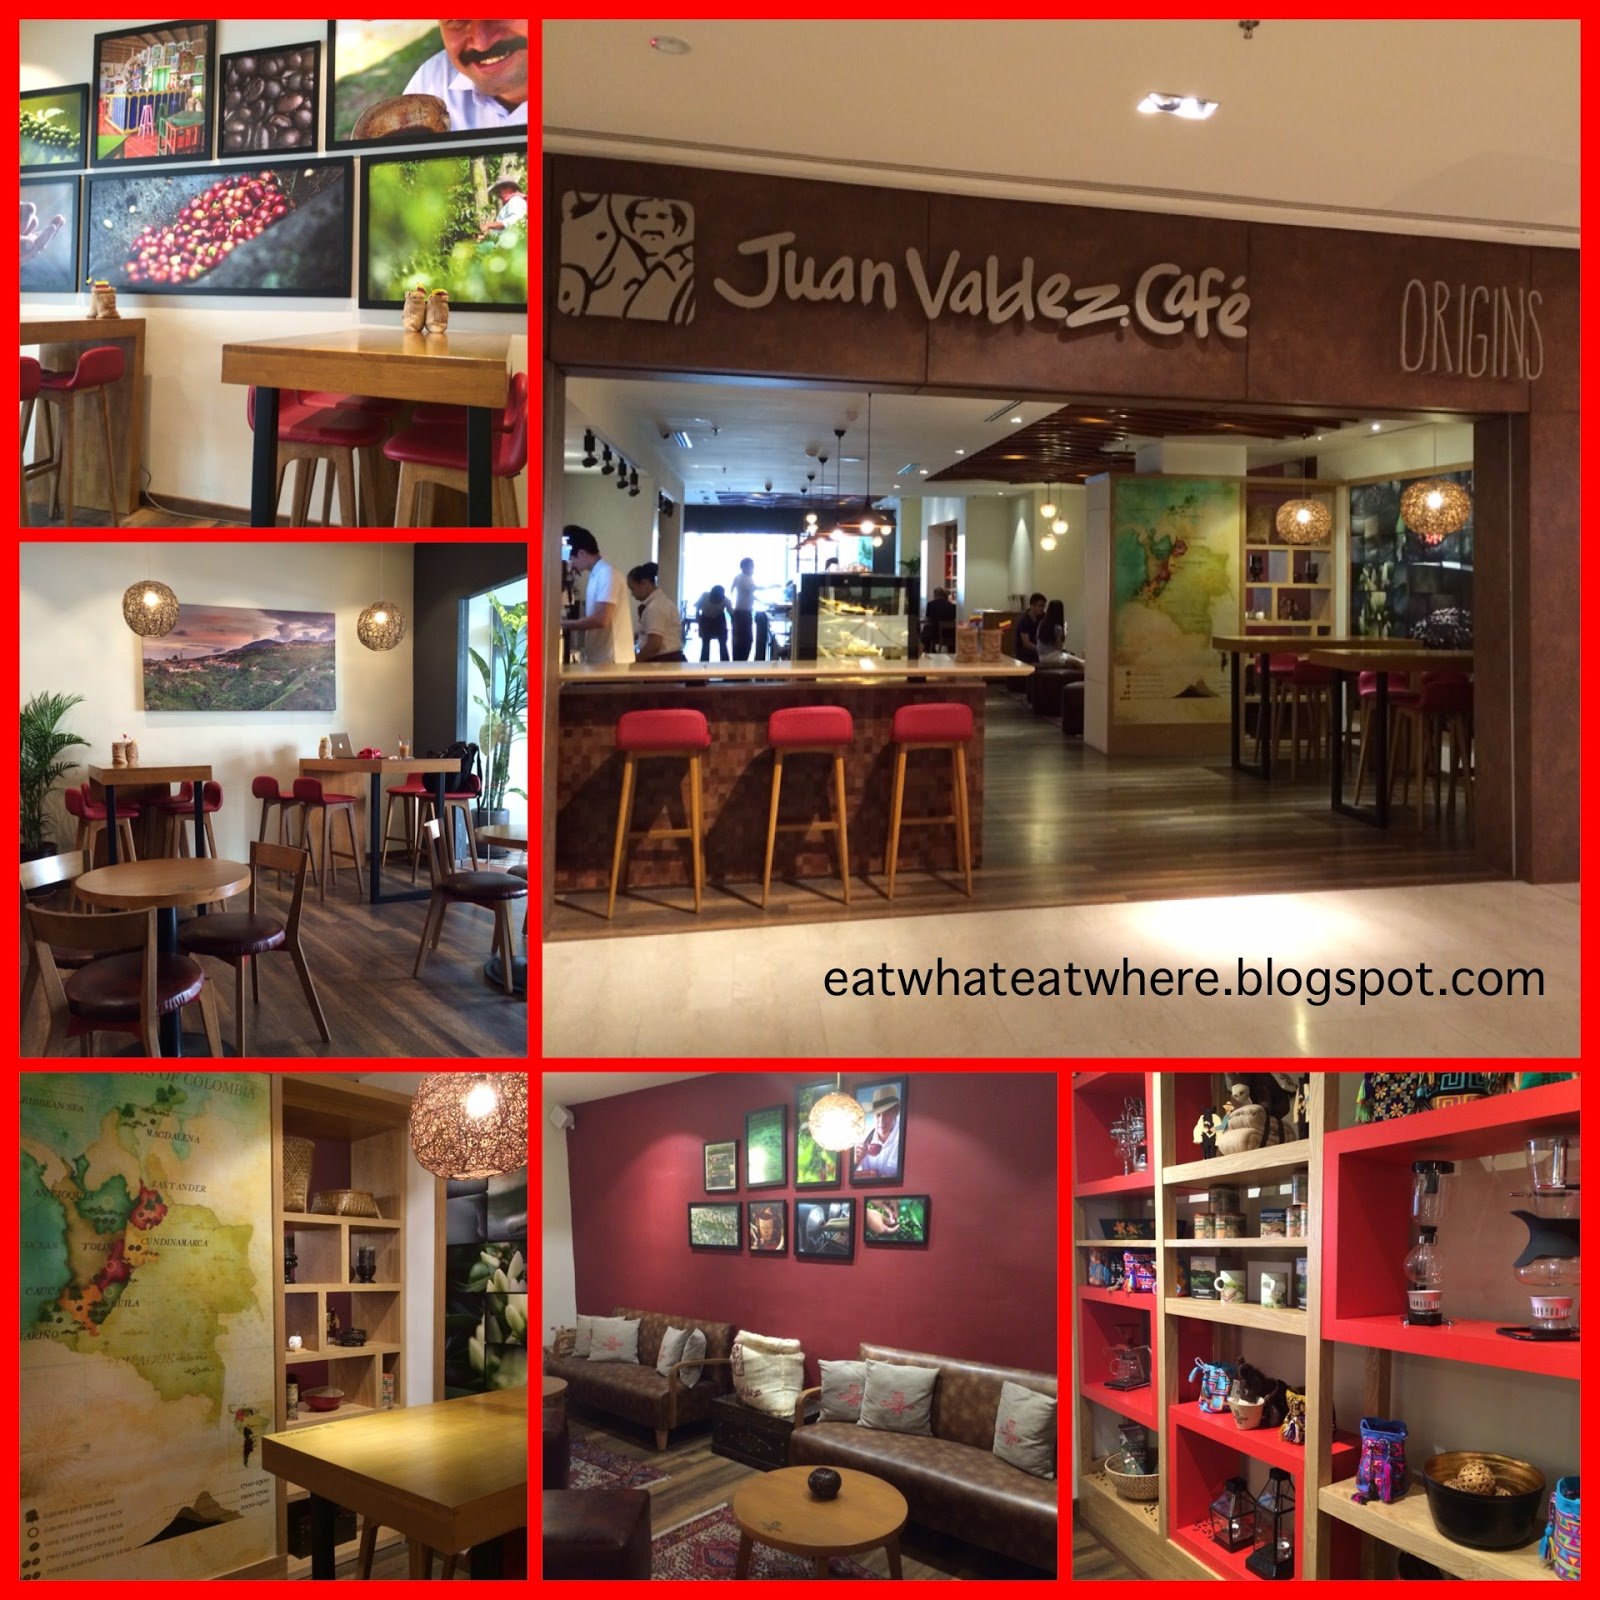 Eat what  Eat where   Juan Valdez Cafe   The Intermark The colourful interior  the classy decor  the beautiful touches  the  adorned knick knacks on the shelves  the wooden tables and leather chairs  gives me the